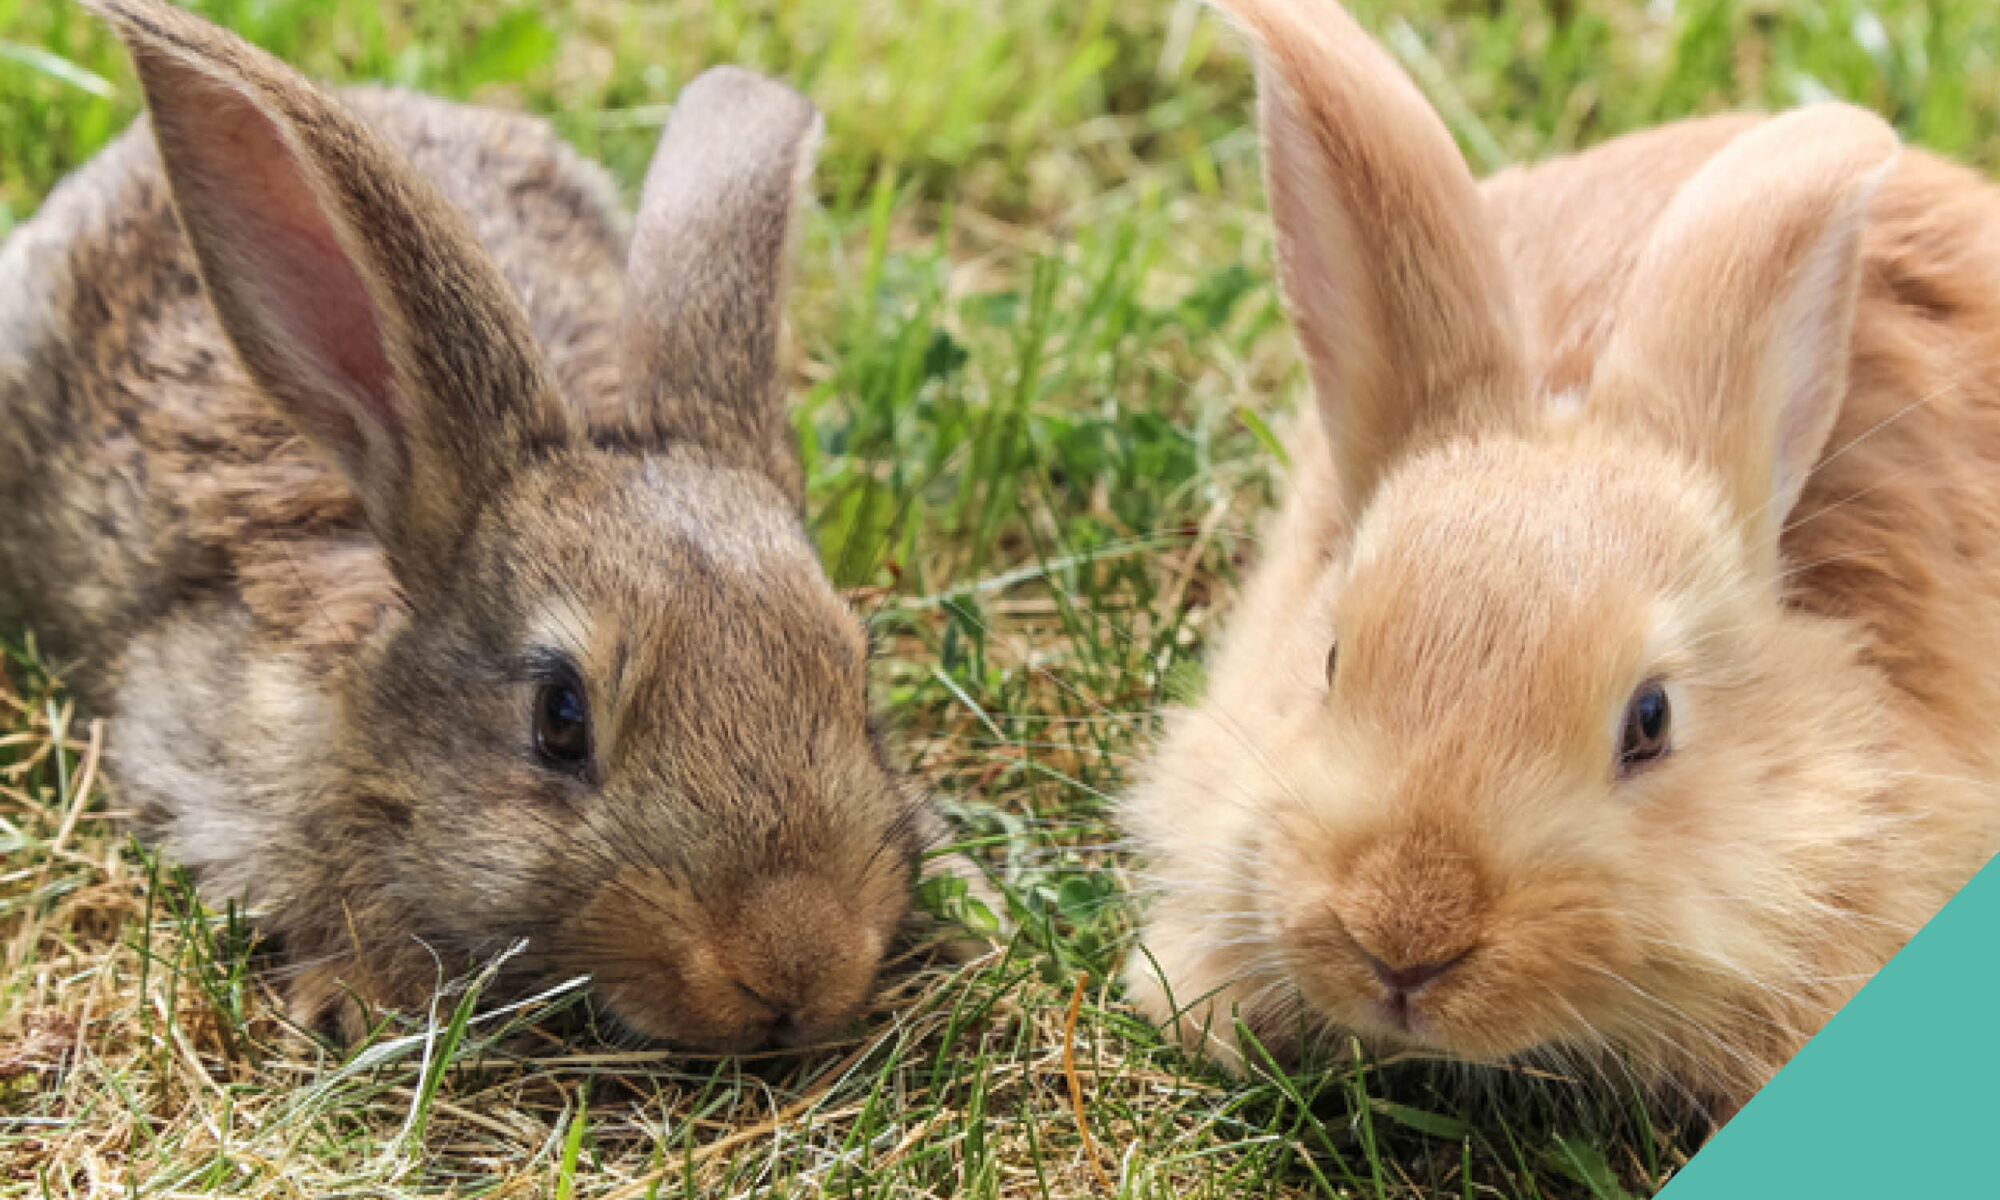 Looking after your pet rabbit in the current environment